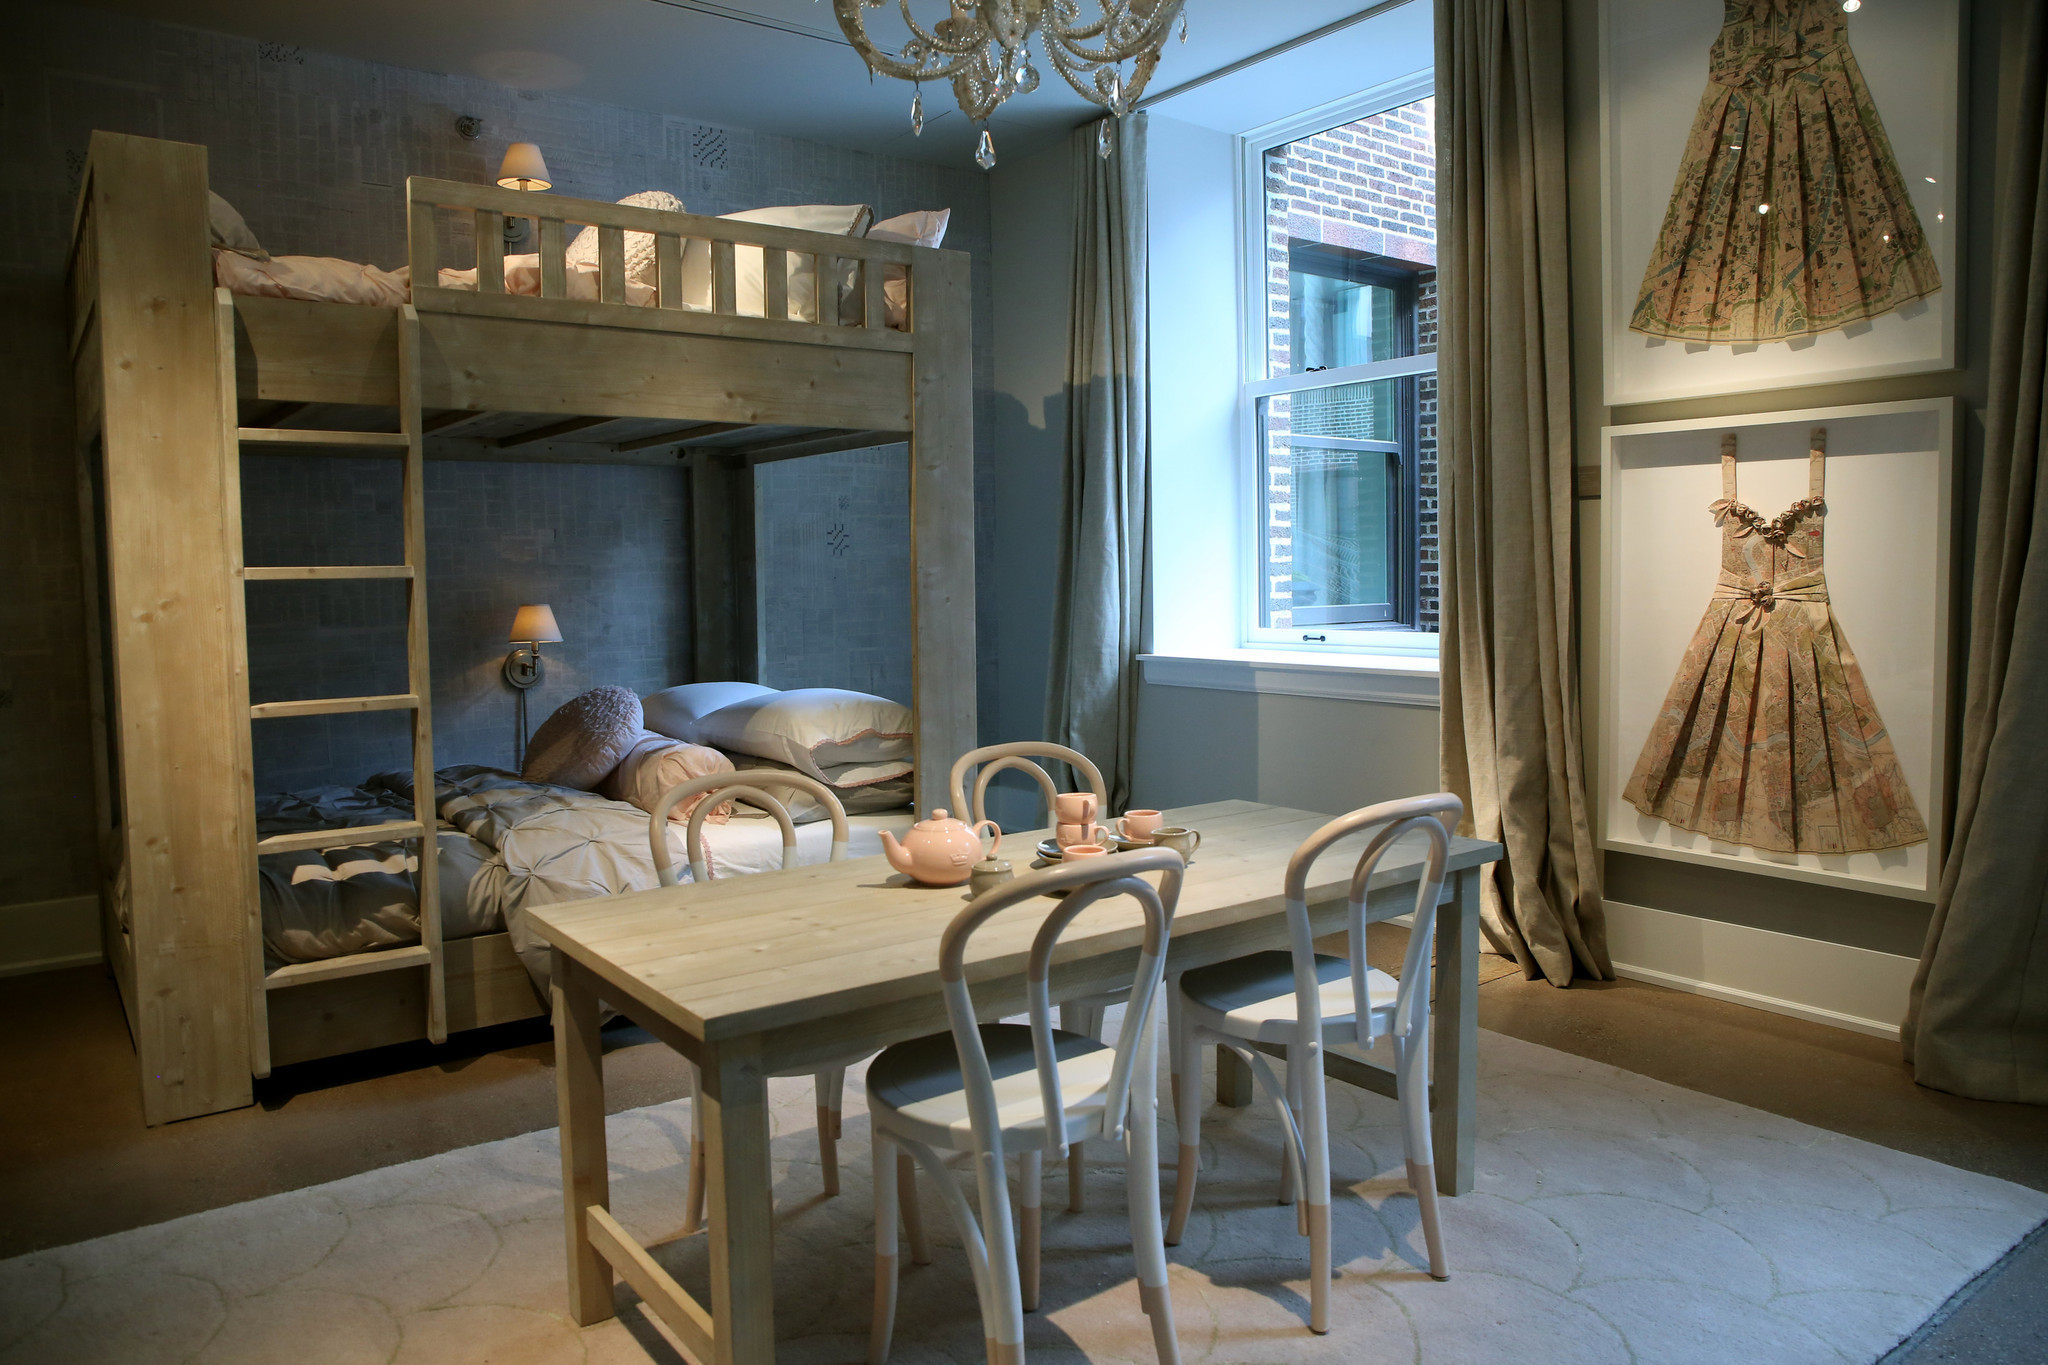 Restoration Hardware S Chicago Store On Track To Exceed